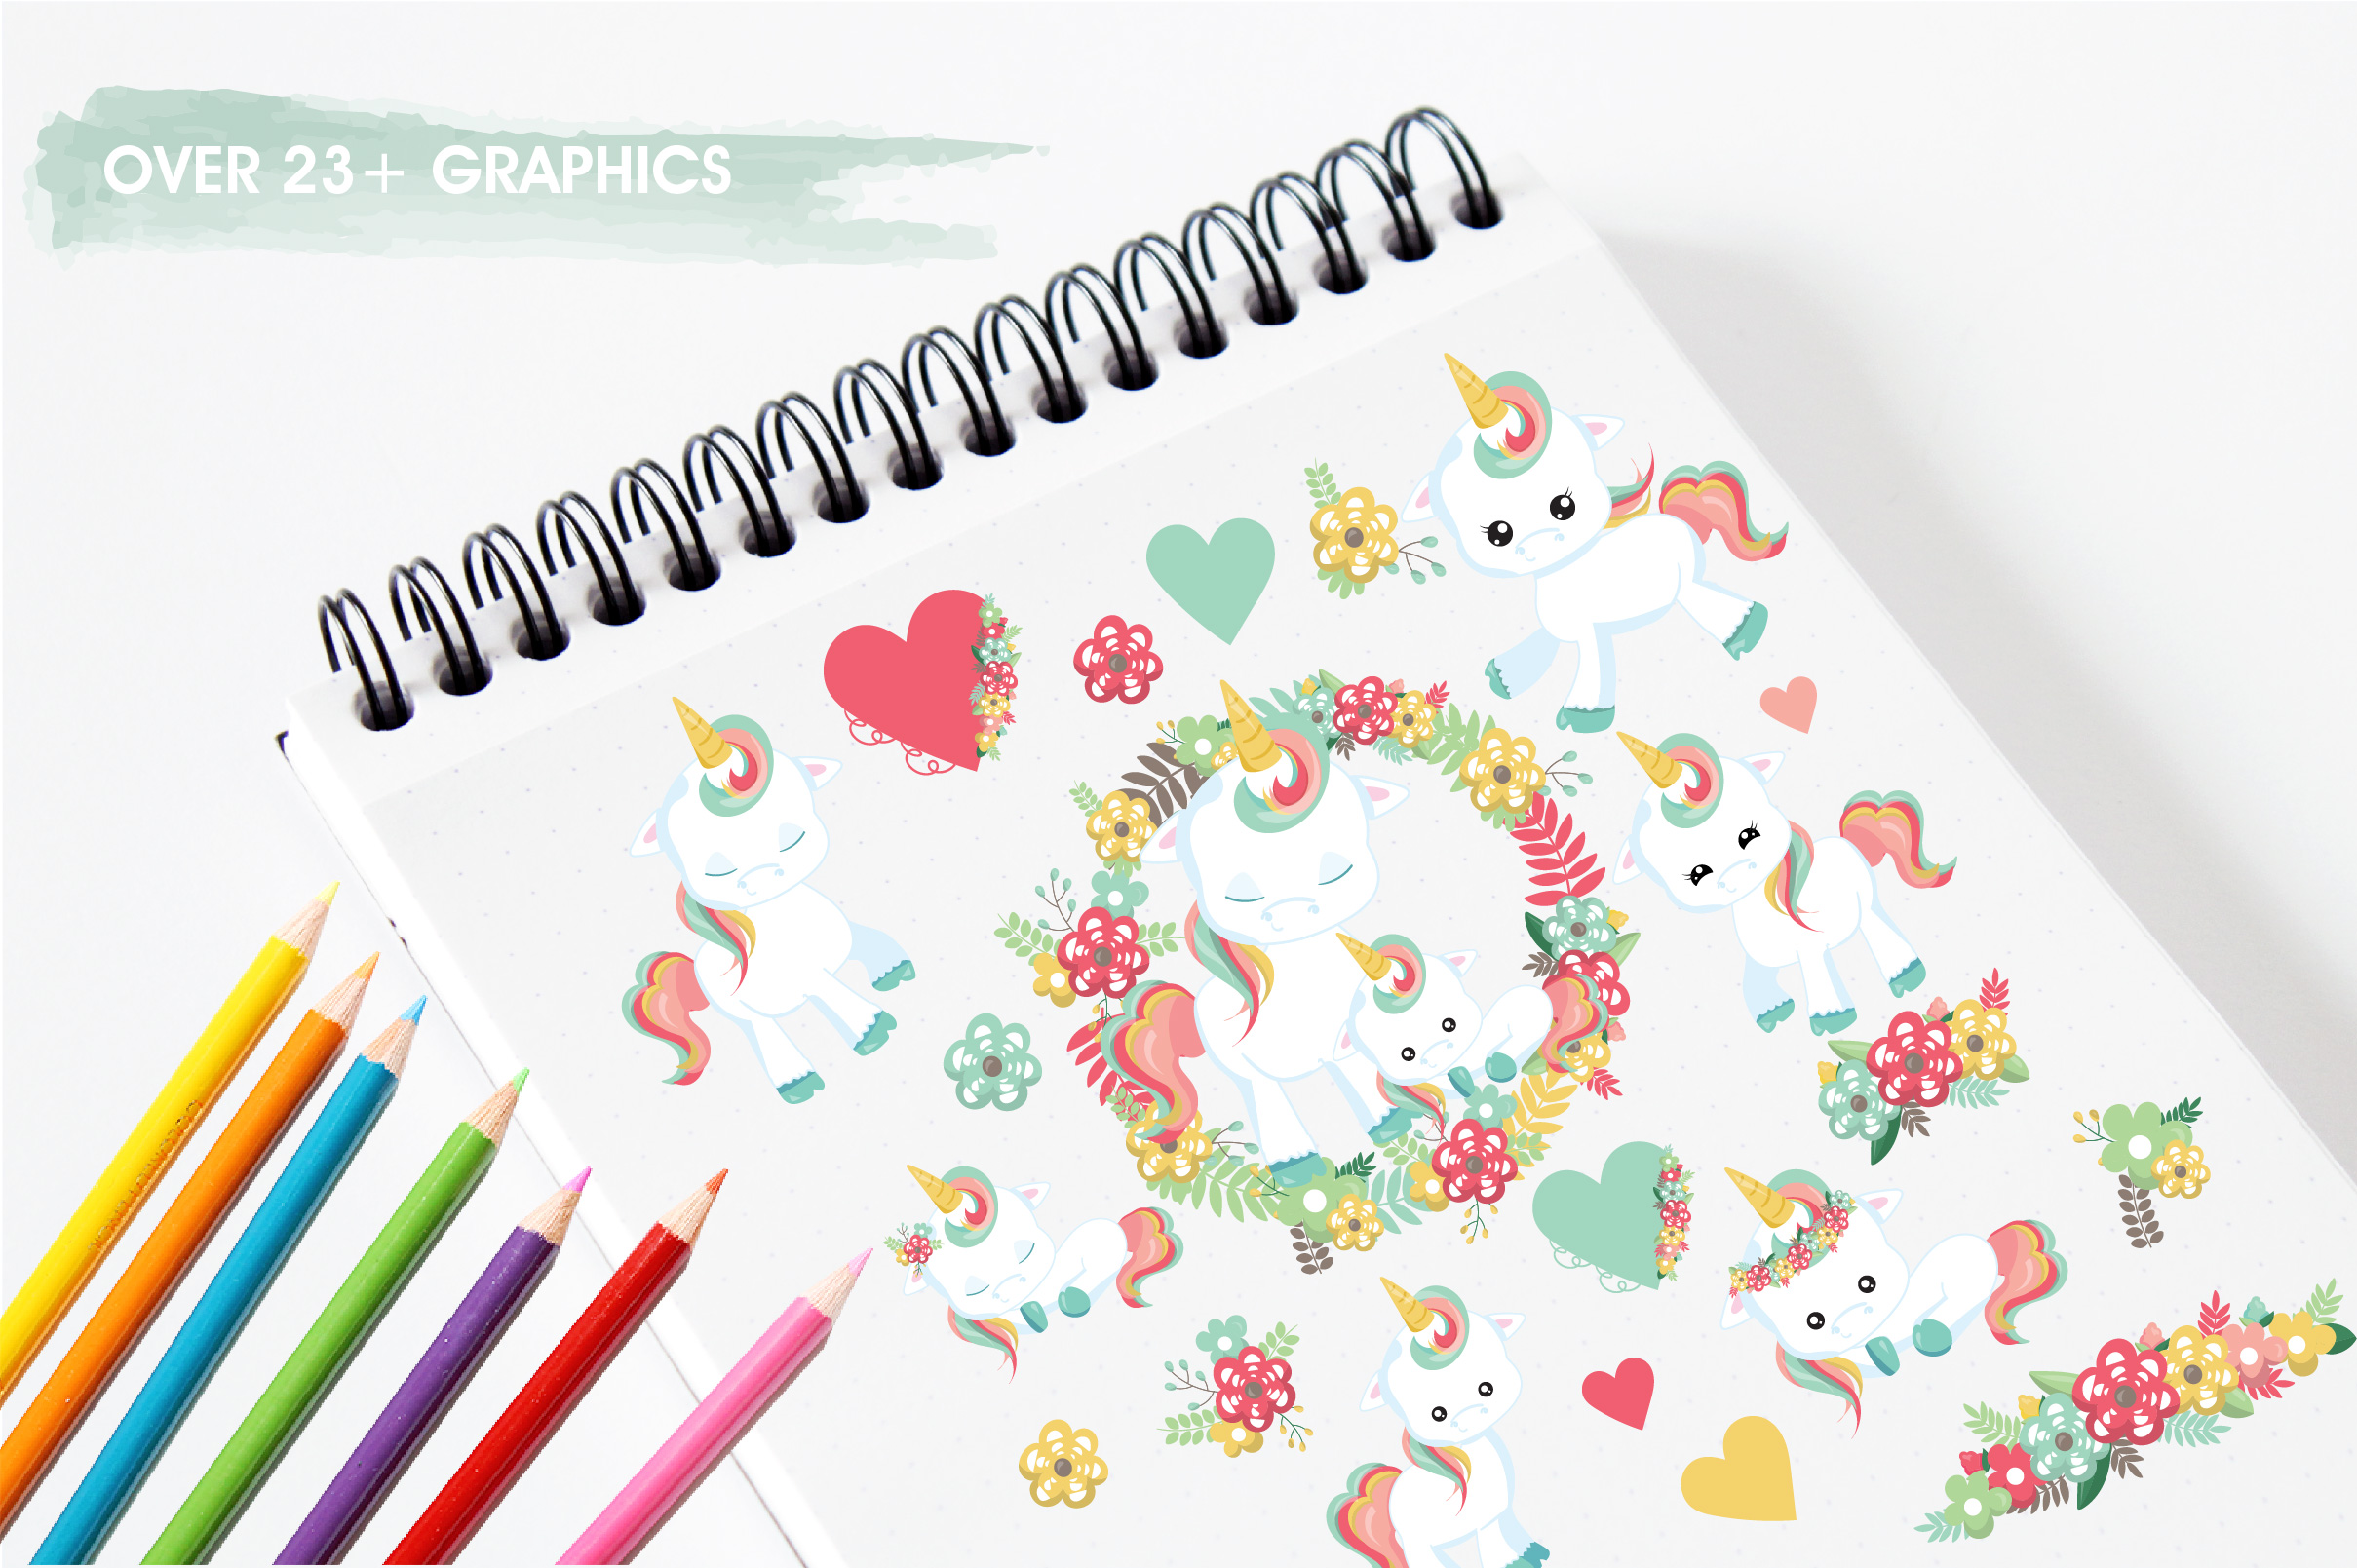 Floral unicorn graphics and illustrations example image 3